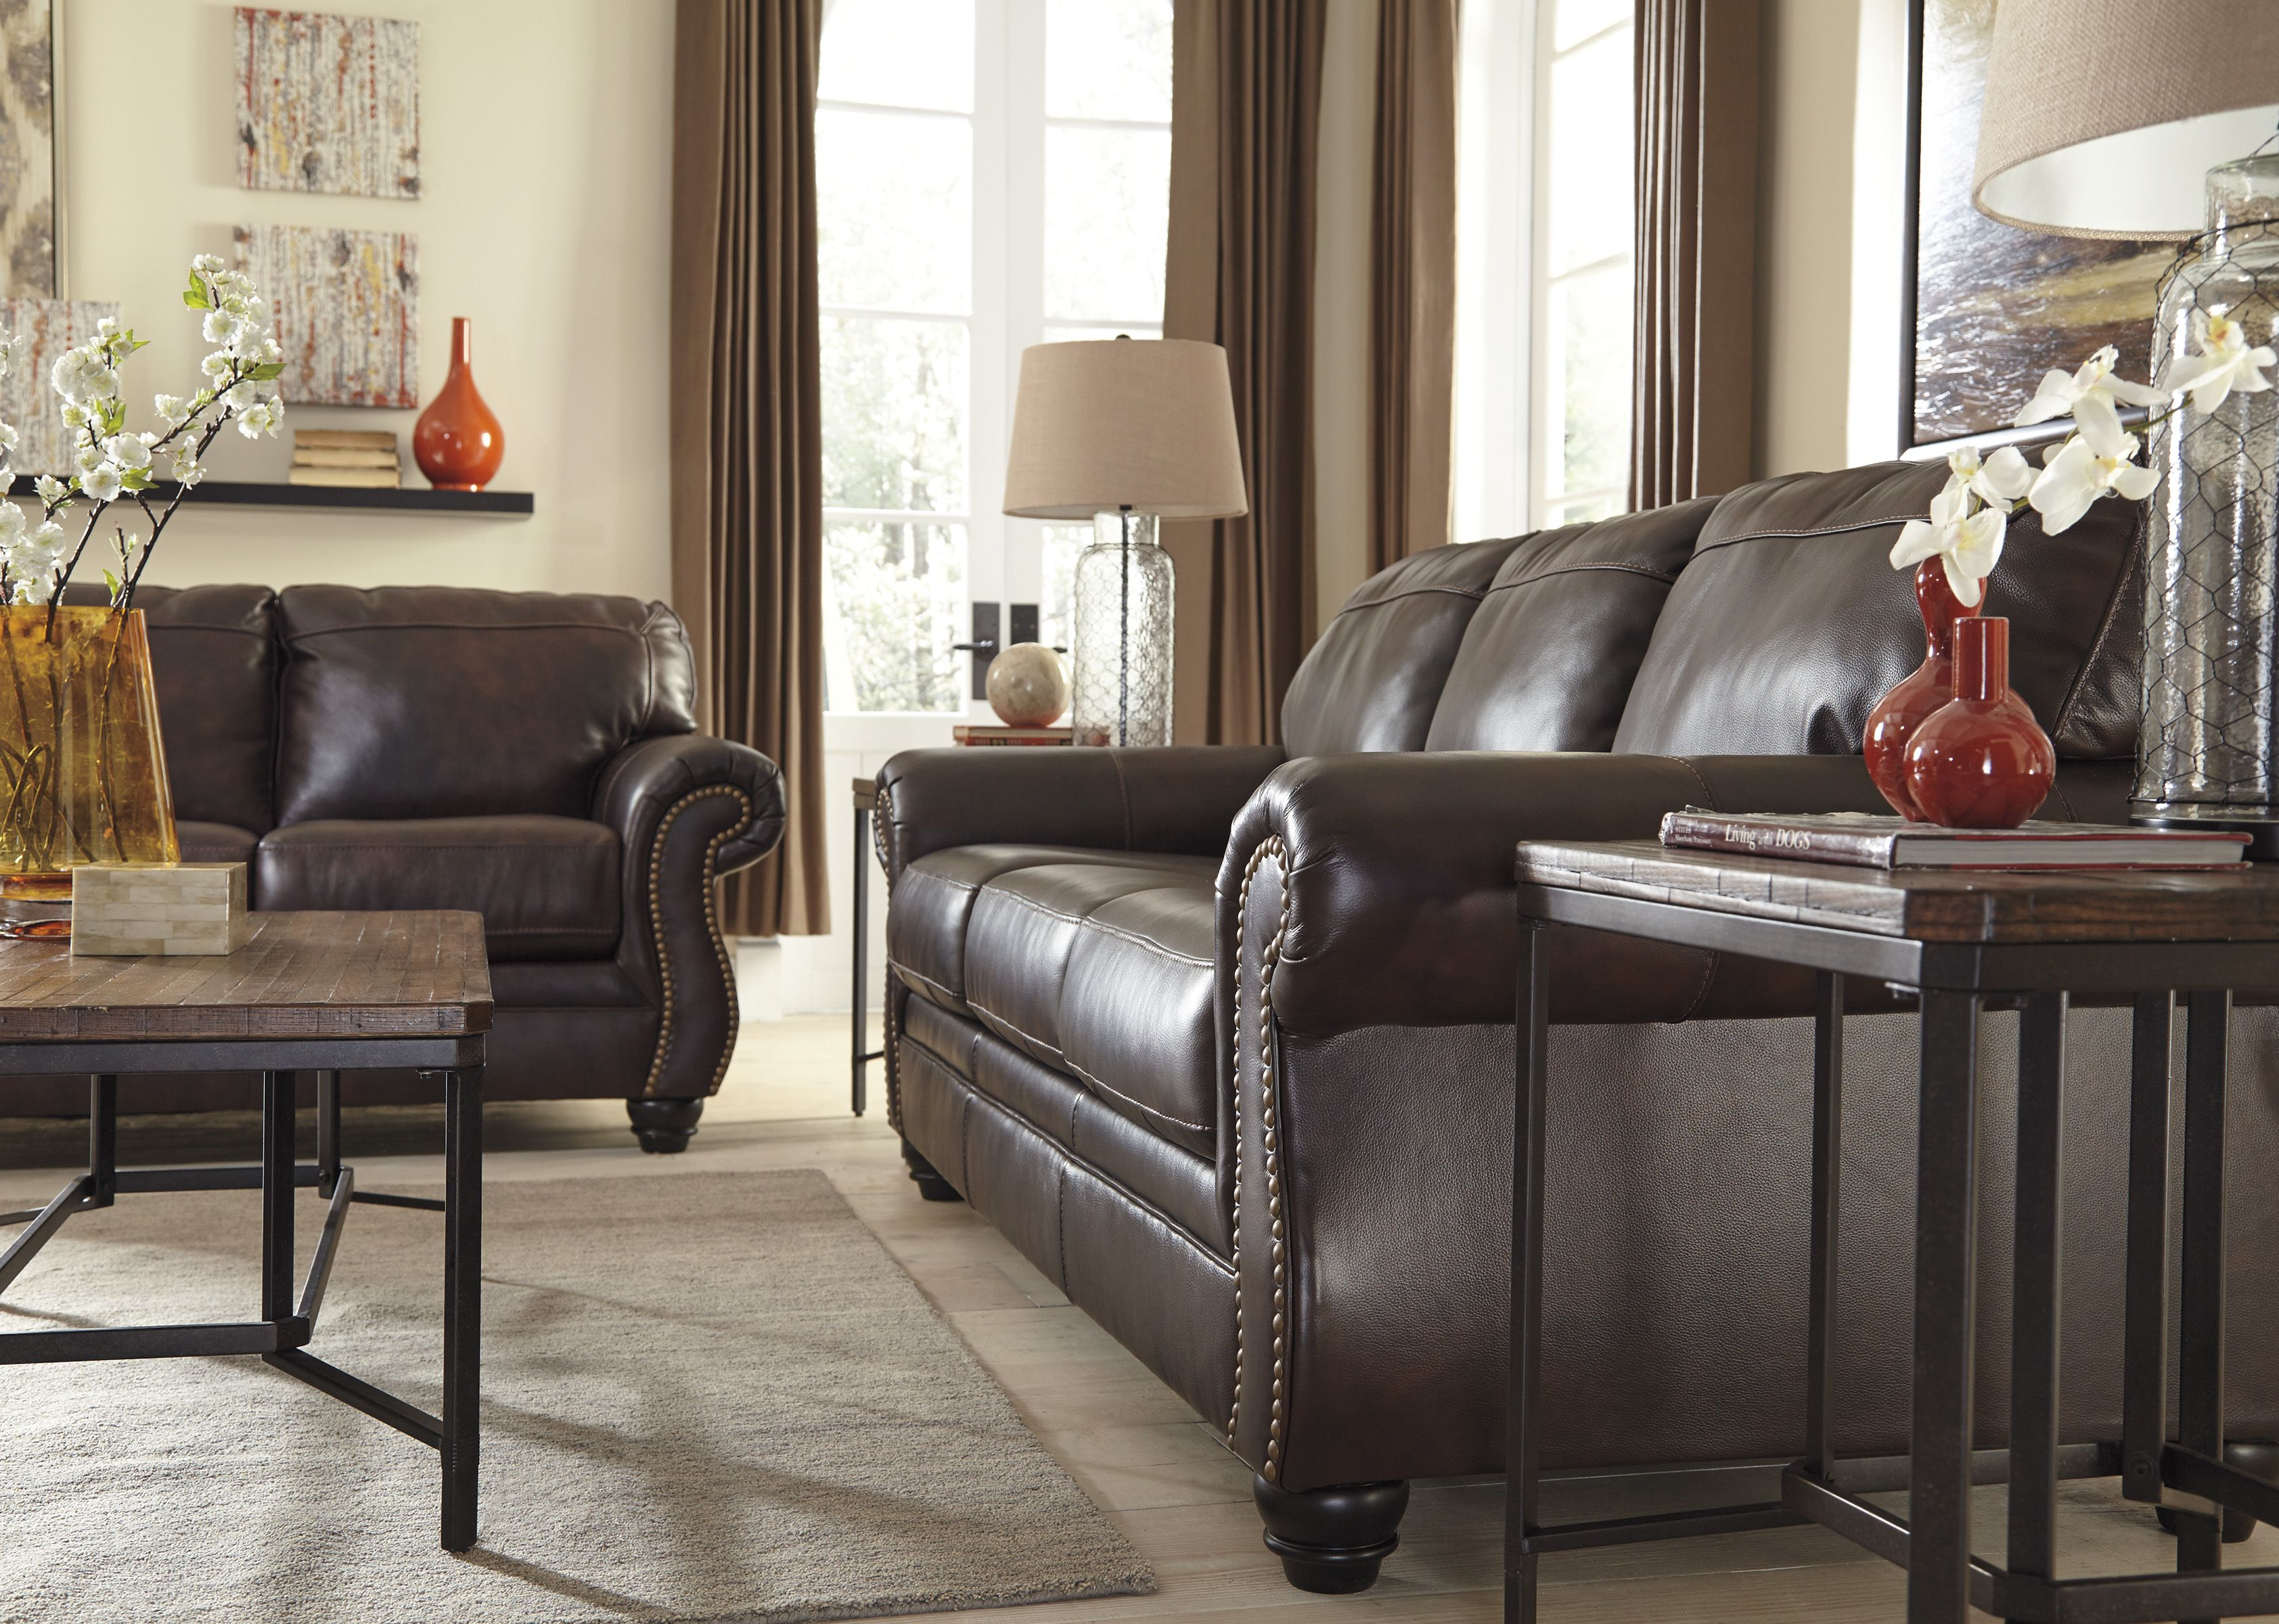 Take A Seat In Sophisticated Style With This Leather Sofa Genuine Leather Sofa Leather Sofa Brown Leather Sofa